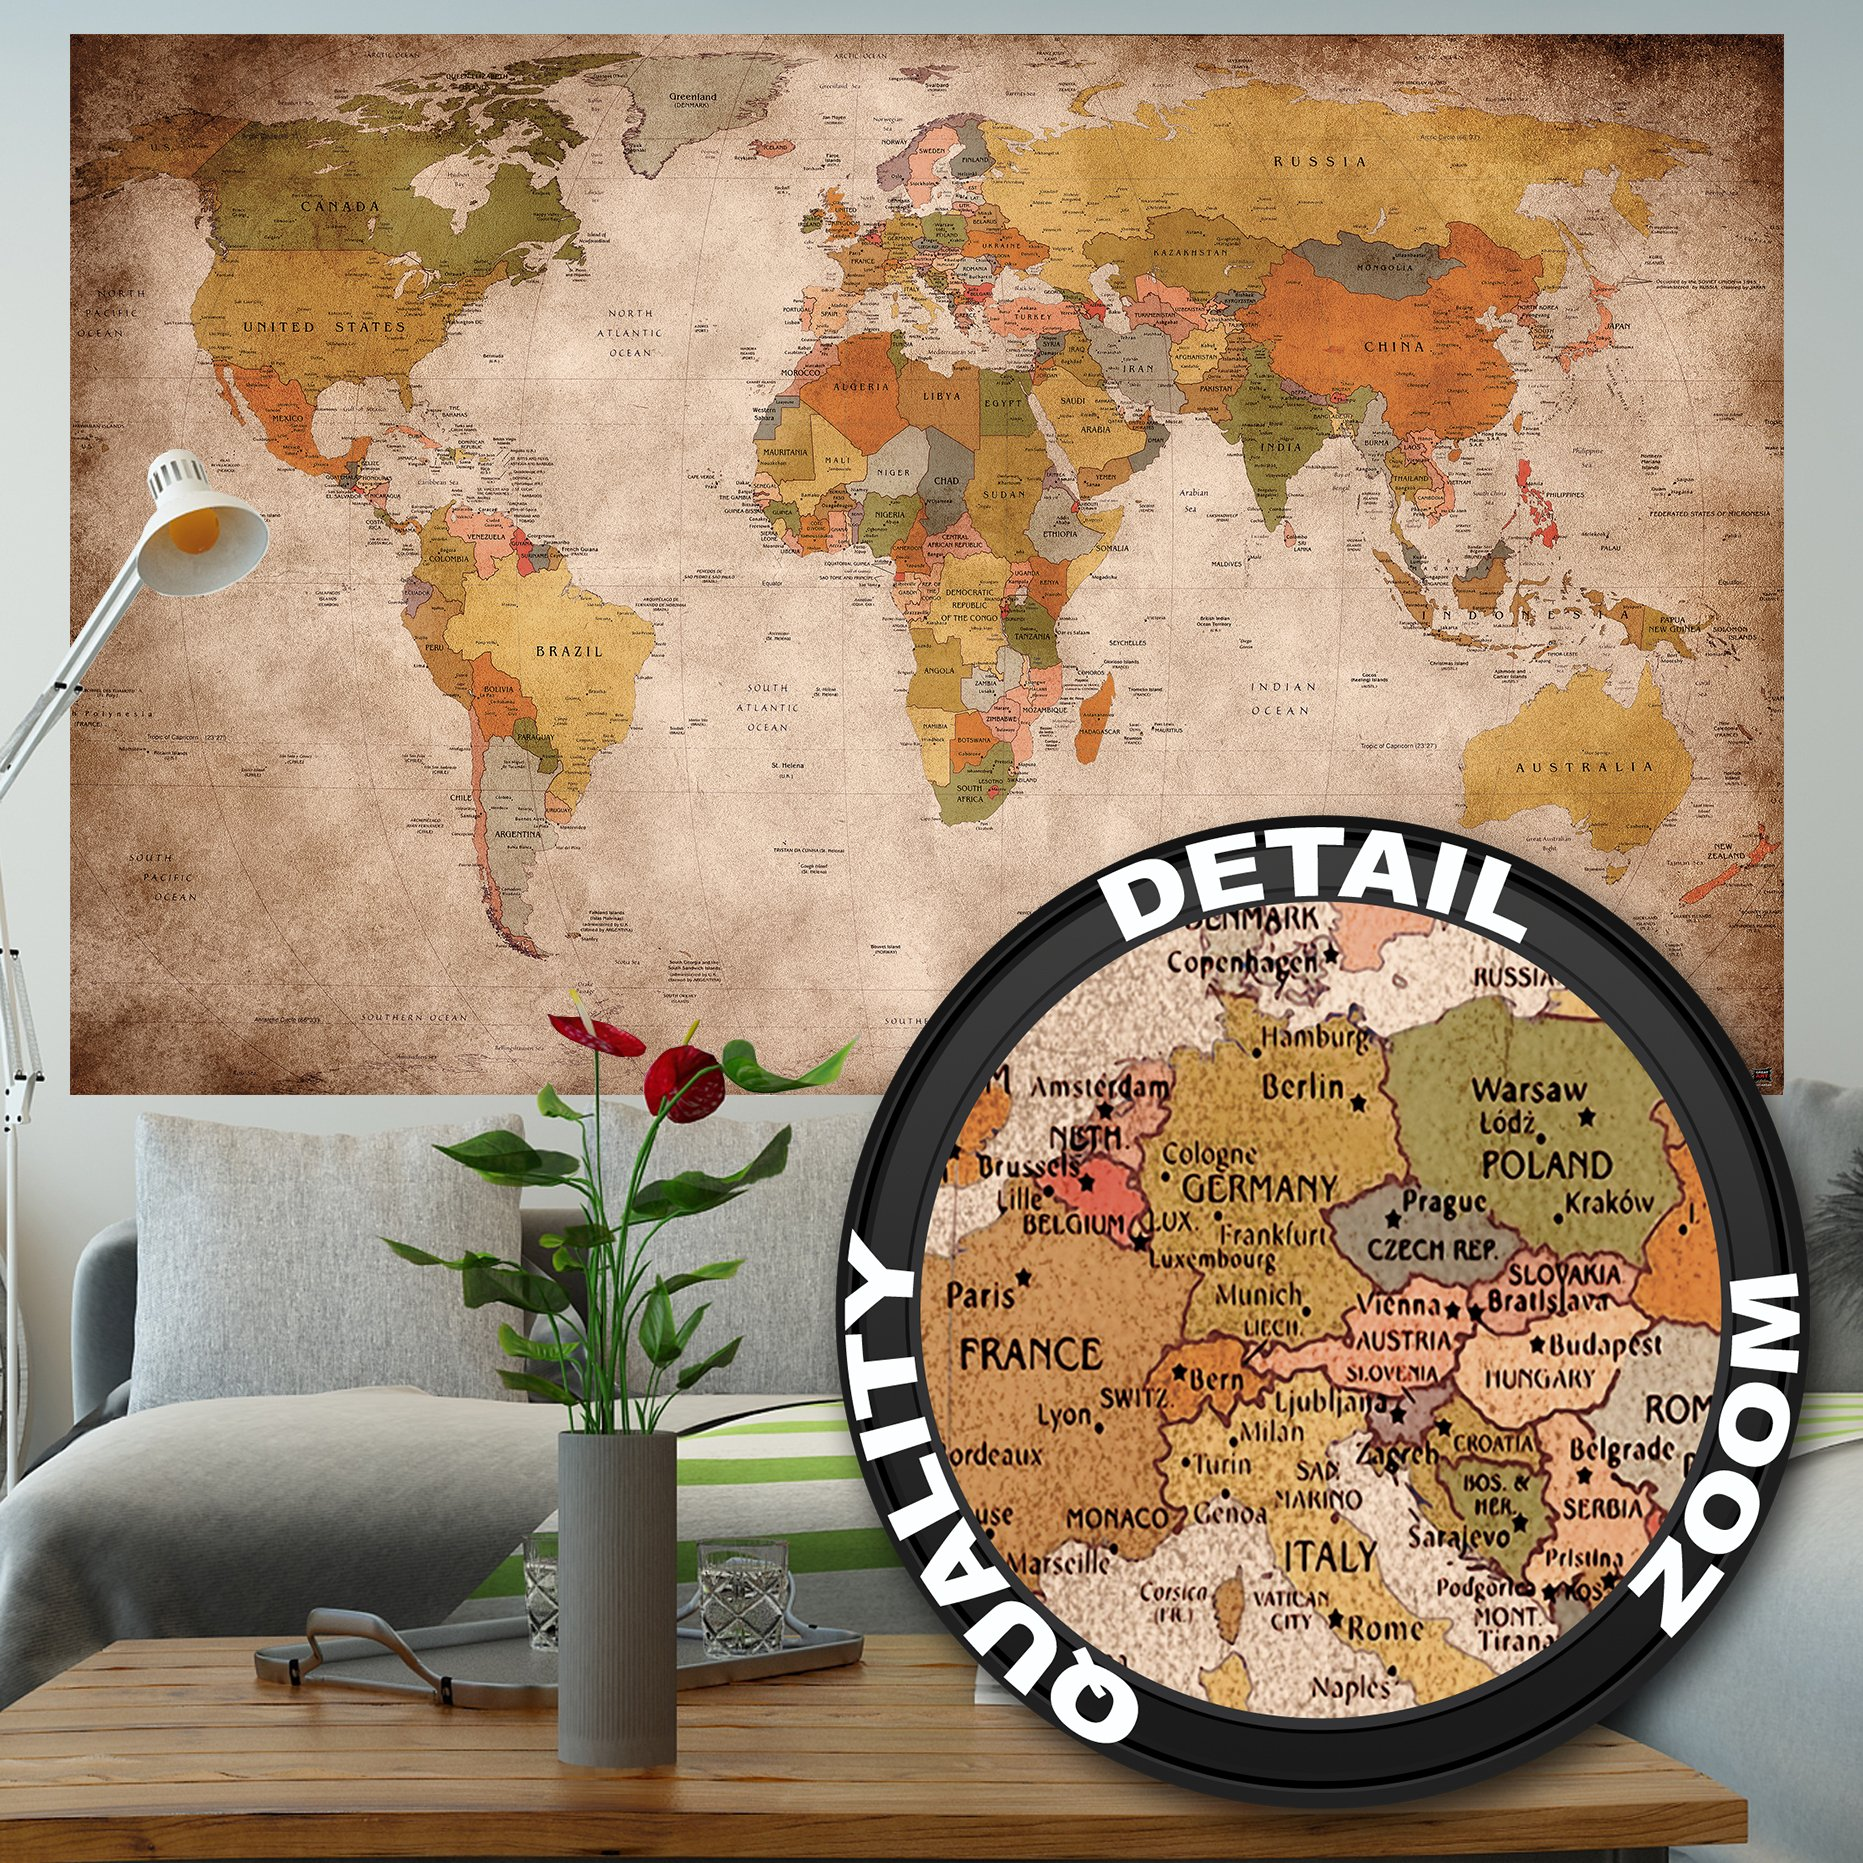 Poster used look – wall picture decoration Globe Continents Atlas World Map Earth Geography retro old school vintage map | Wallposter Photoposter wall mural wall decor by GREAT ART